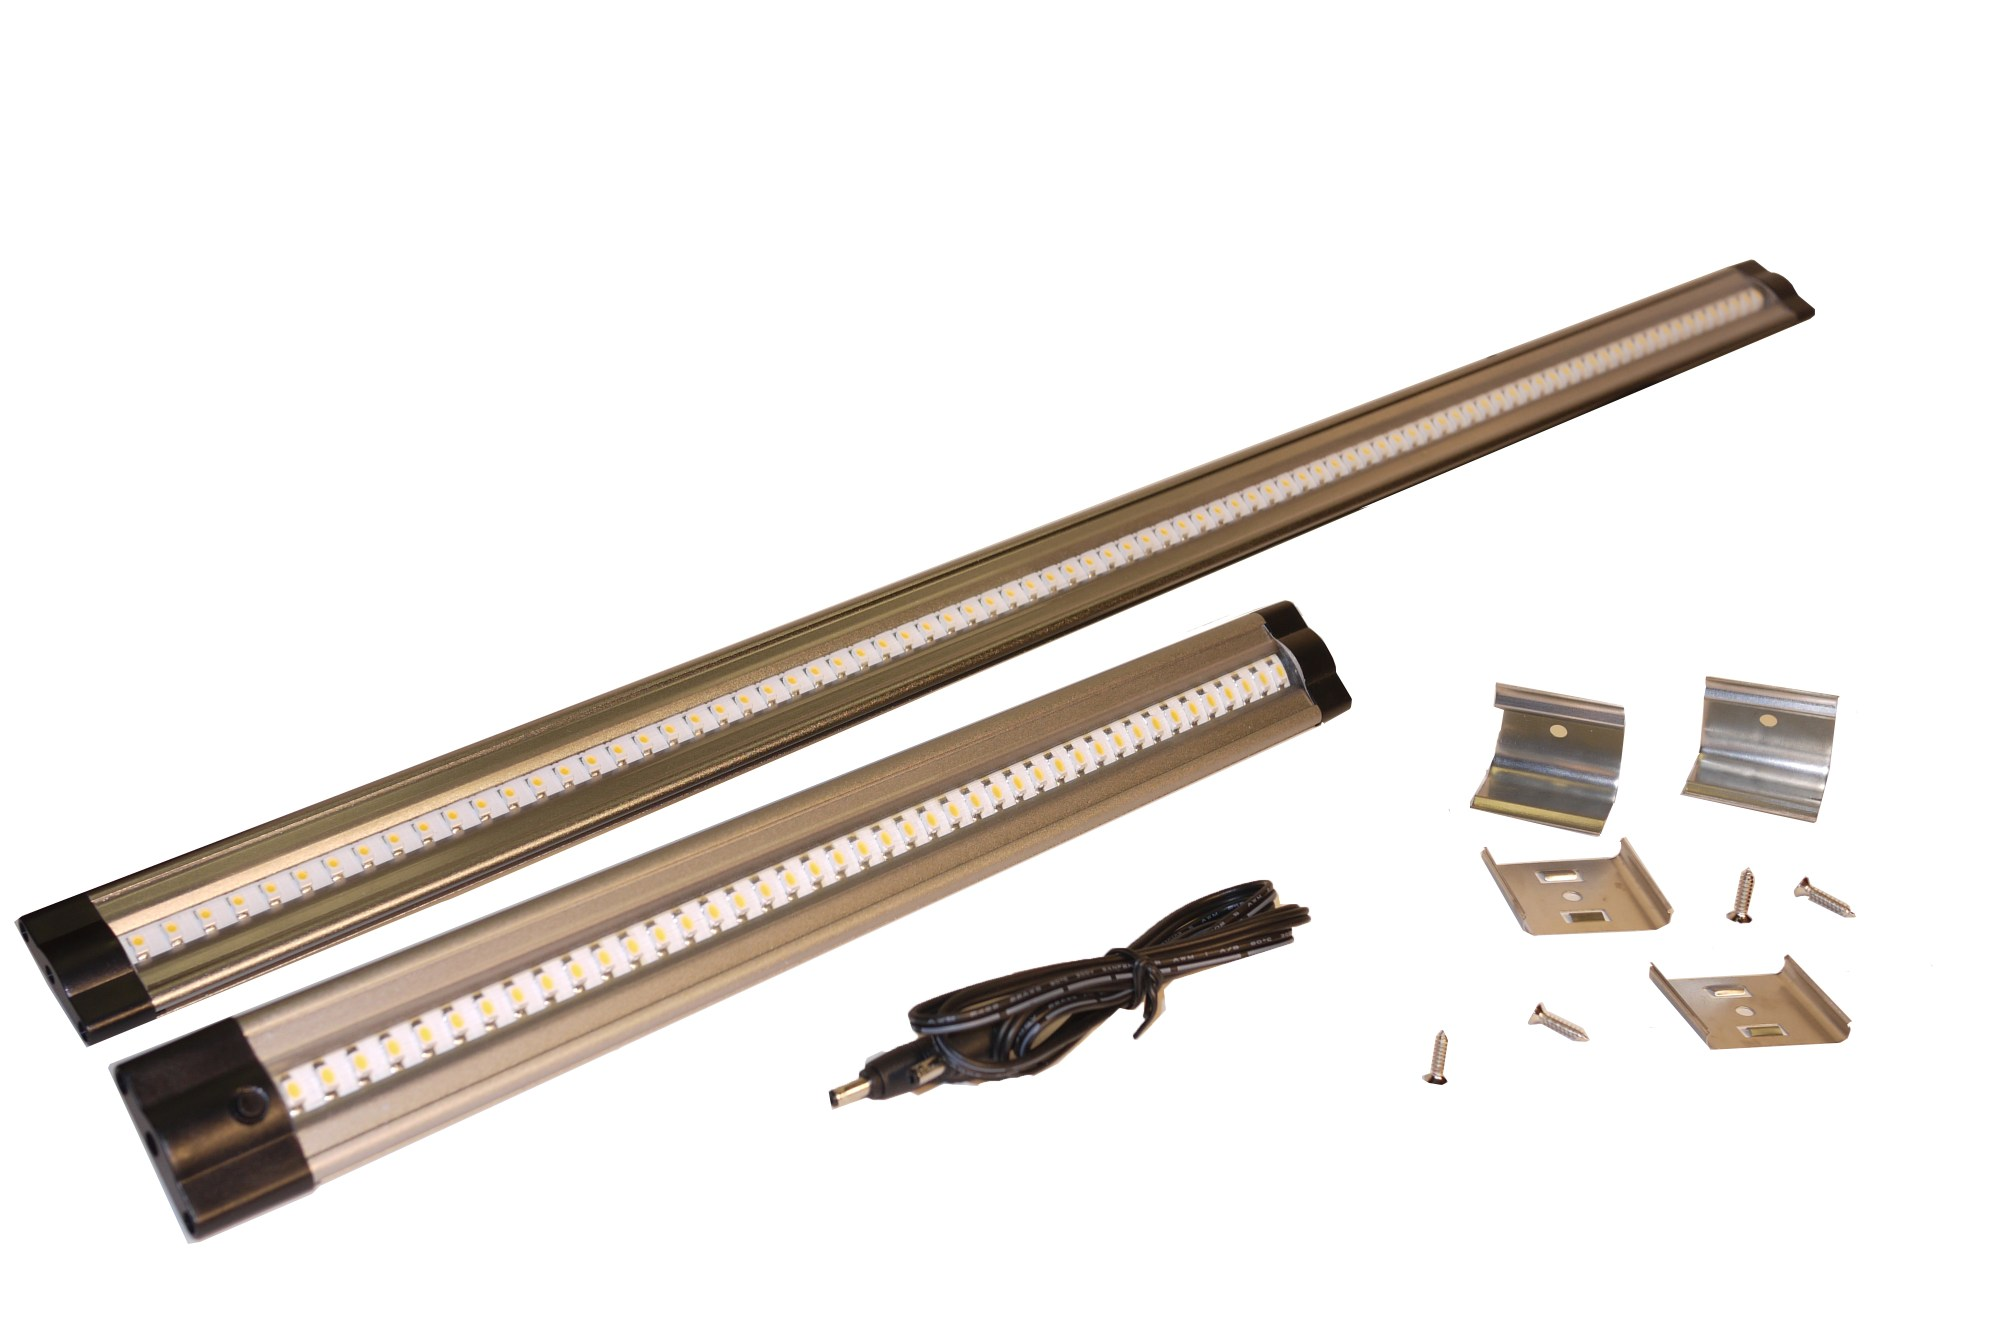 hight resolution of the new dekor 24 led under cabinet light bar is twice as long as our original led light bar